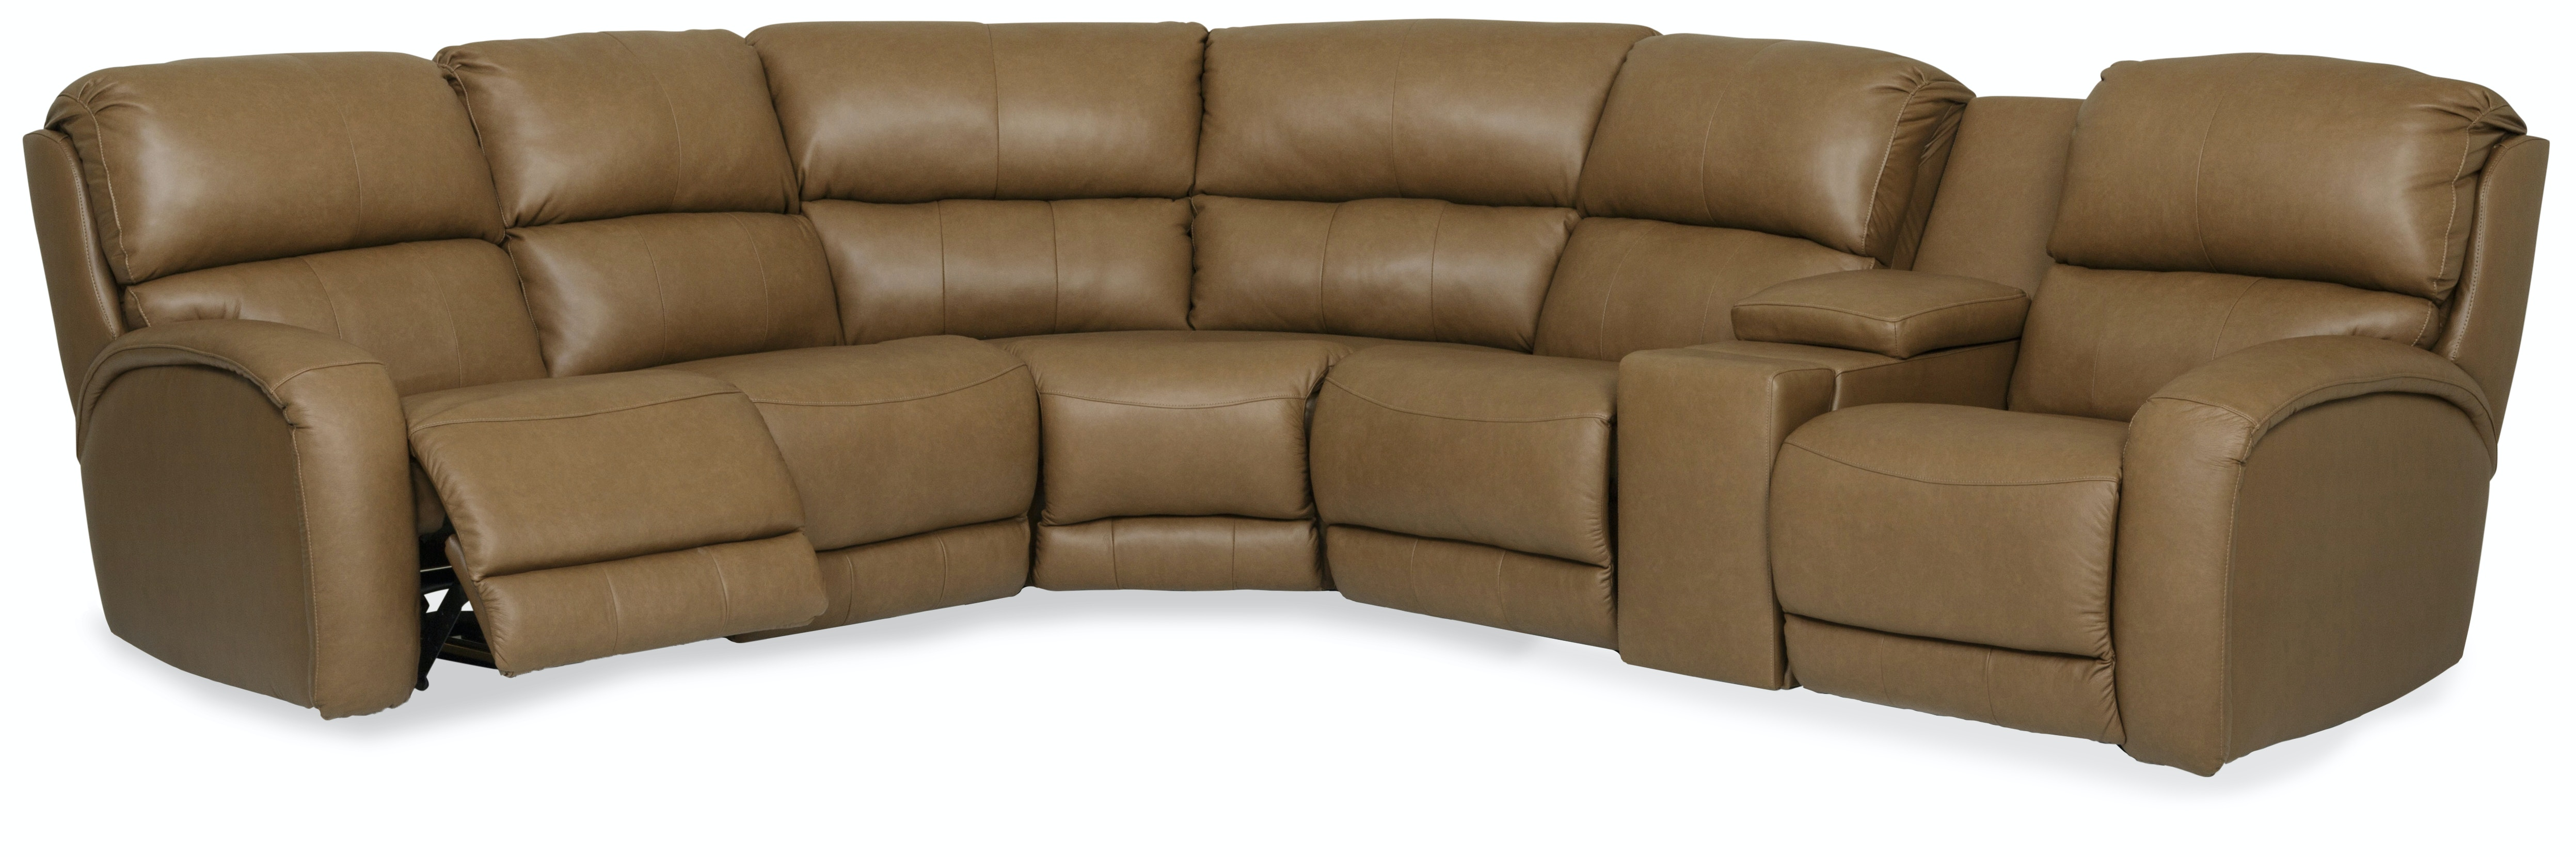 justin ii fabric reclining sectional sofa white slipcovers leather sectionals star furniture tx houston texas fandango modular 6 piece power with heat massage